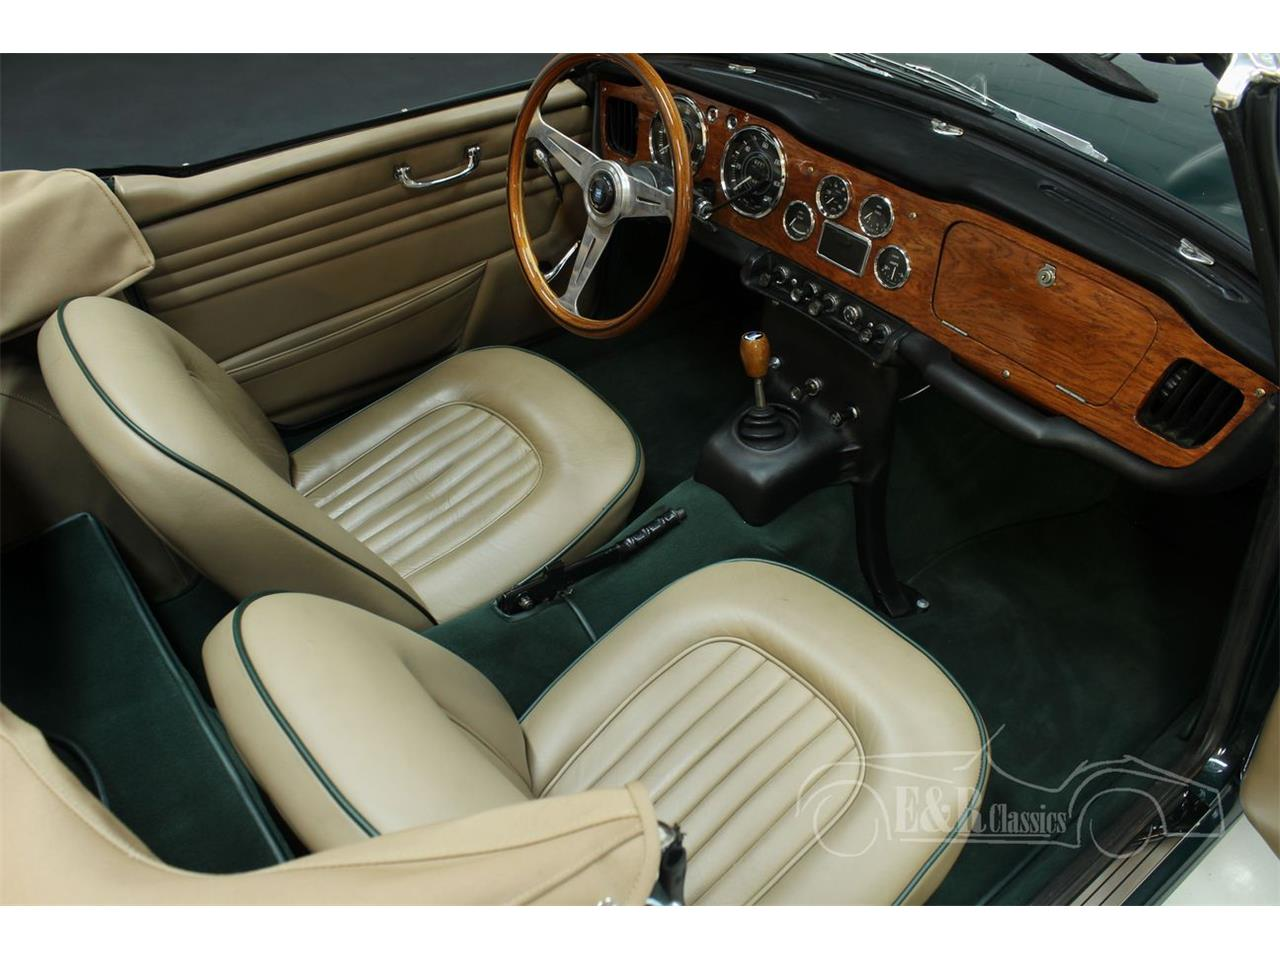 Large Picture of 1967 TR4 located in Waalwijk Noord-Brabant - $55,750.00 - Q45O